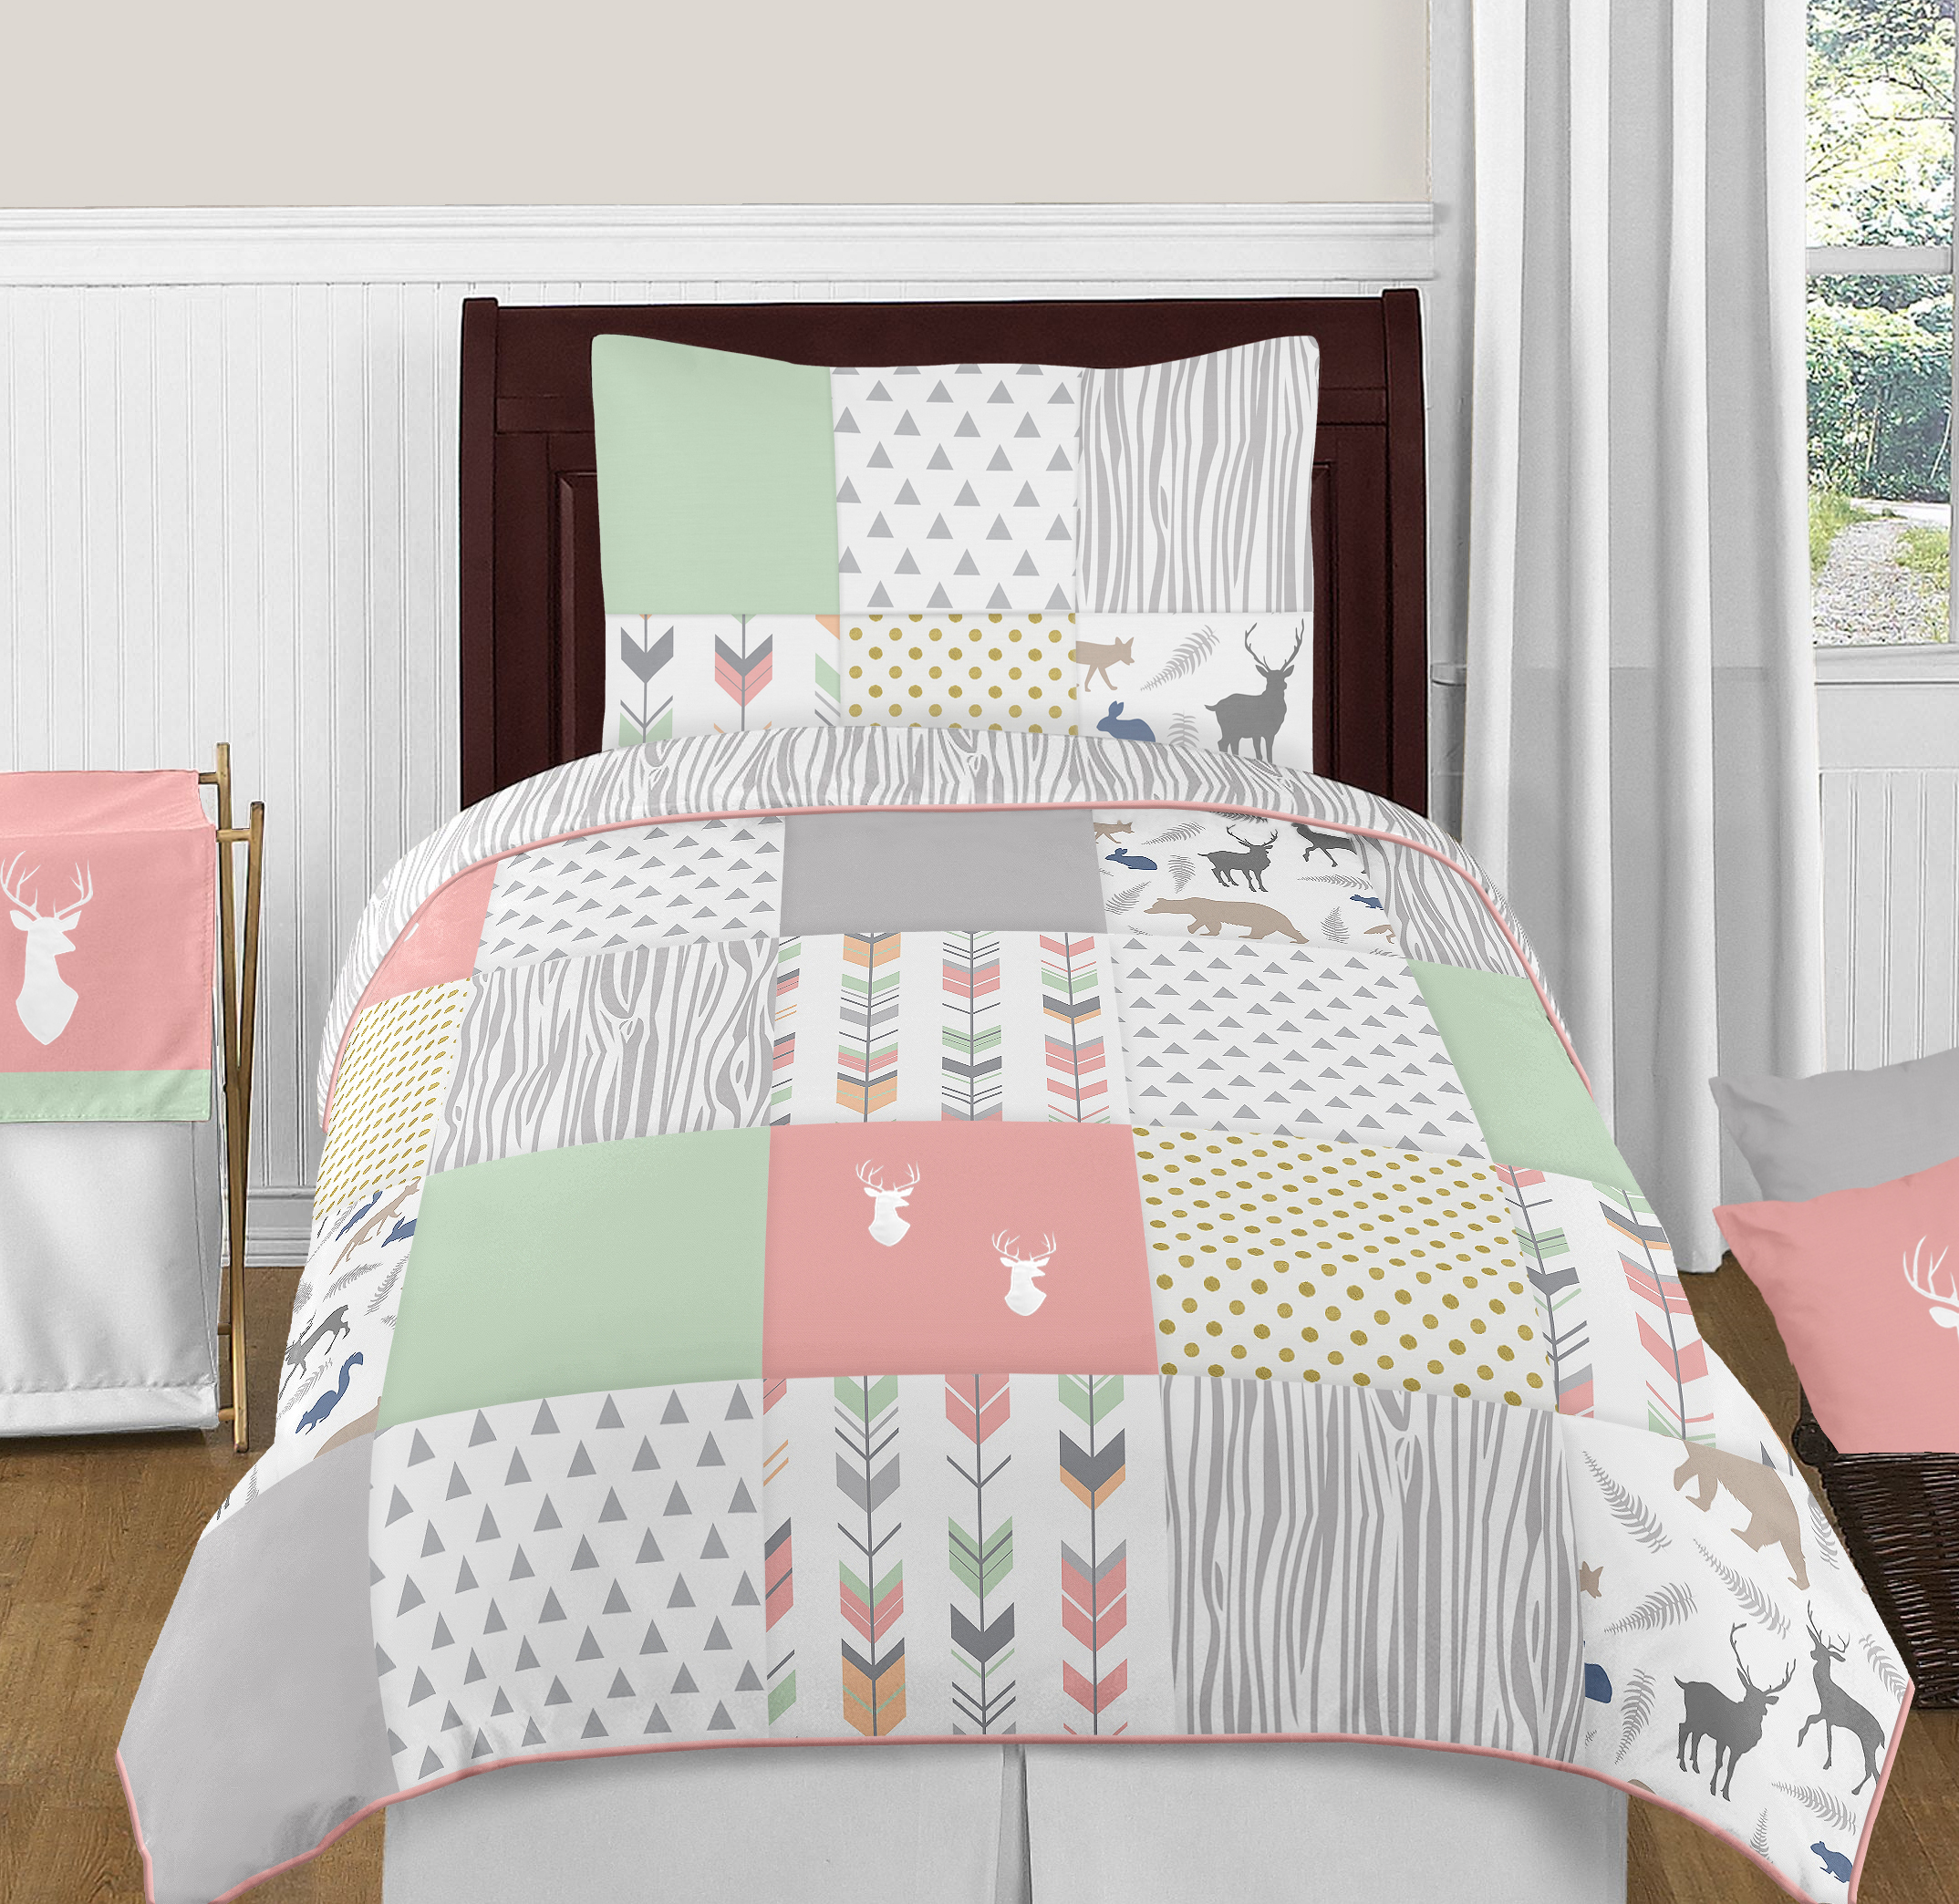 Mint Green Bedrooms For Girls Bedroom Curtains 2016 Eclectic Bedroom Furniture Bedroom Design With Bathroom: Mint Coral Grey Gold Dot Modern Woodland Arrow Girl